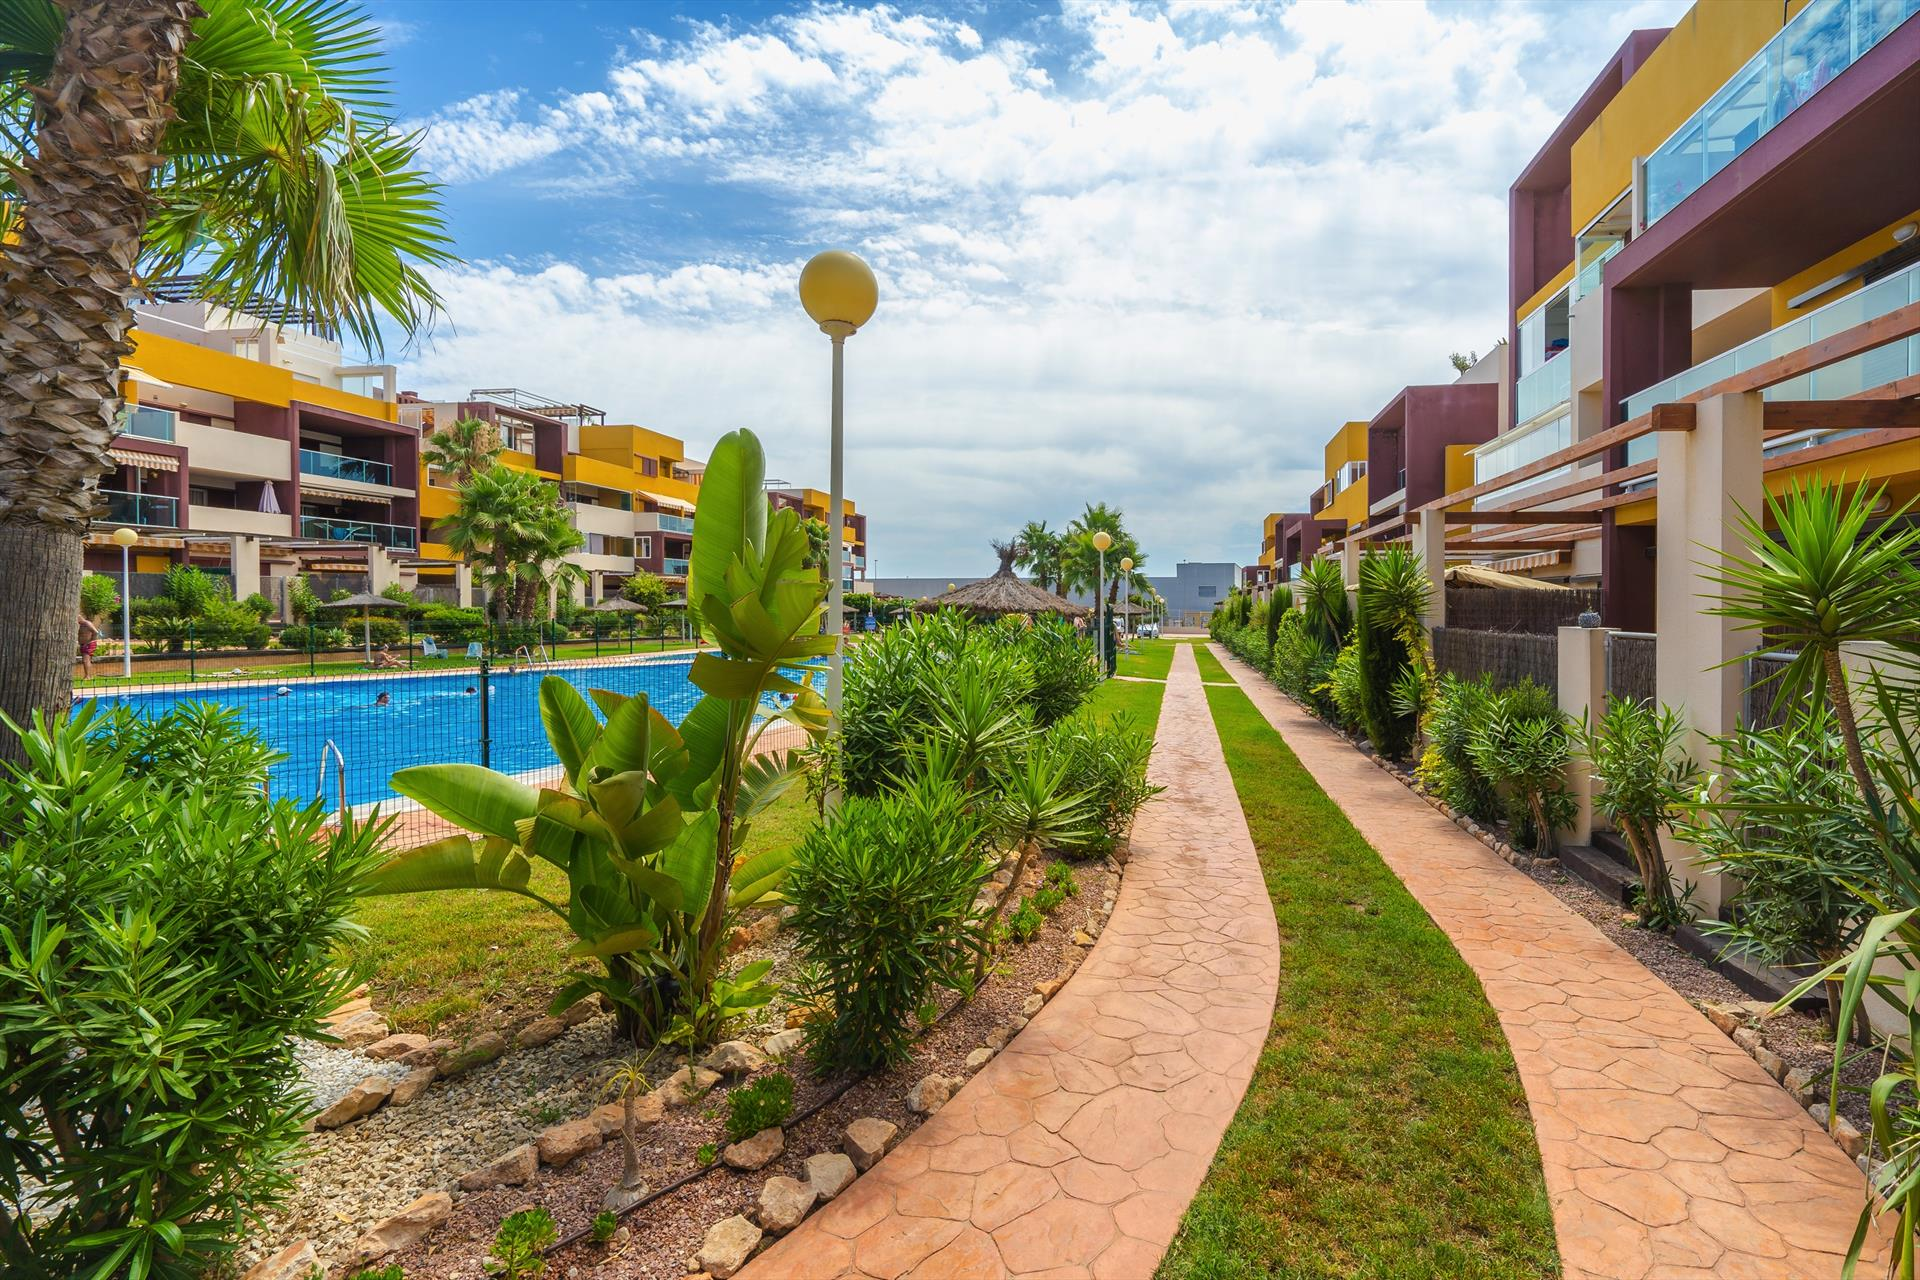 El Bosque,Lovely apartment in Orihuela Costa, on the Costa Blanca, Spain  with communal pool for 4 persons.....